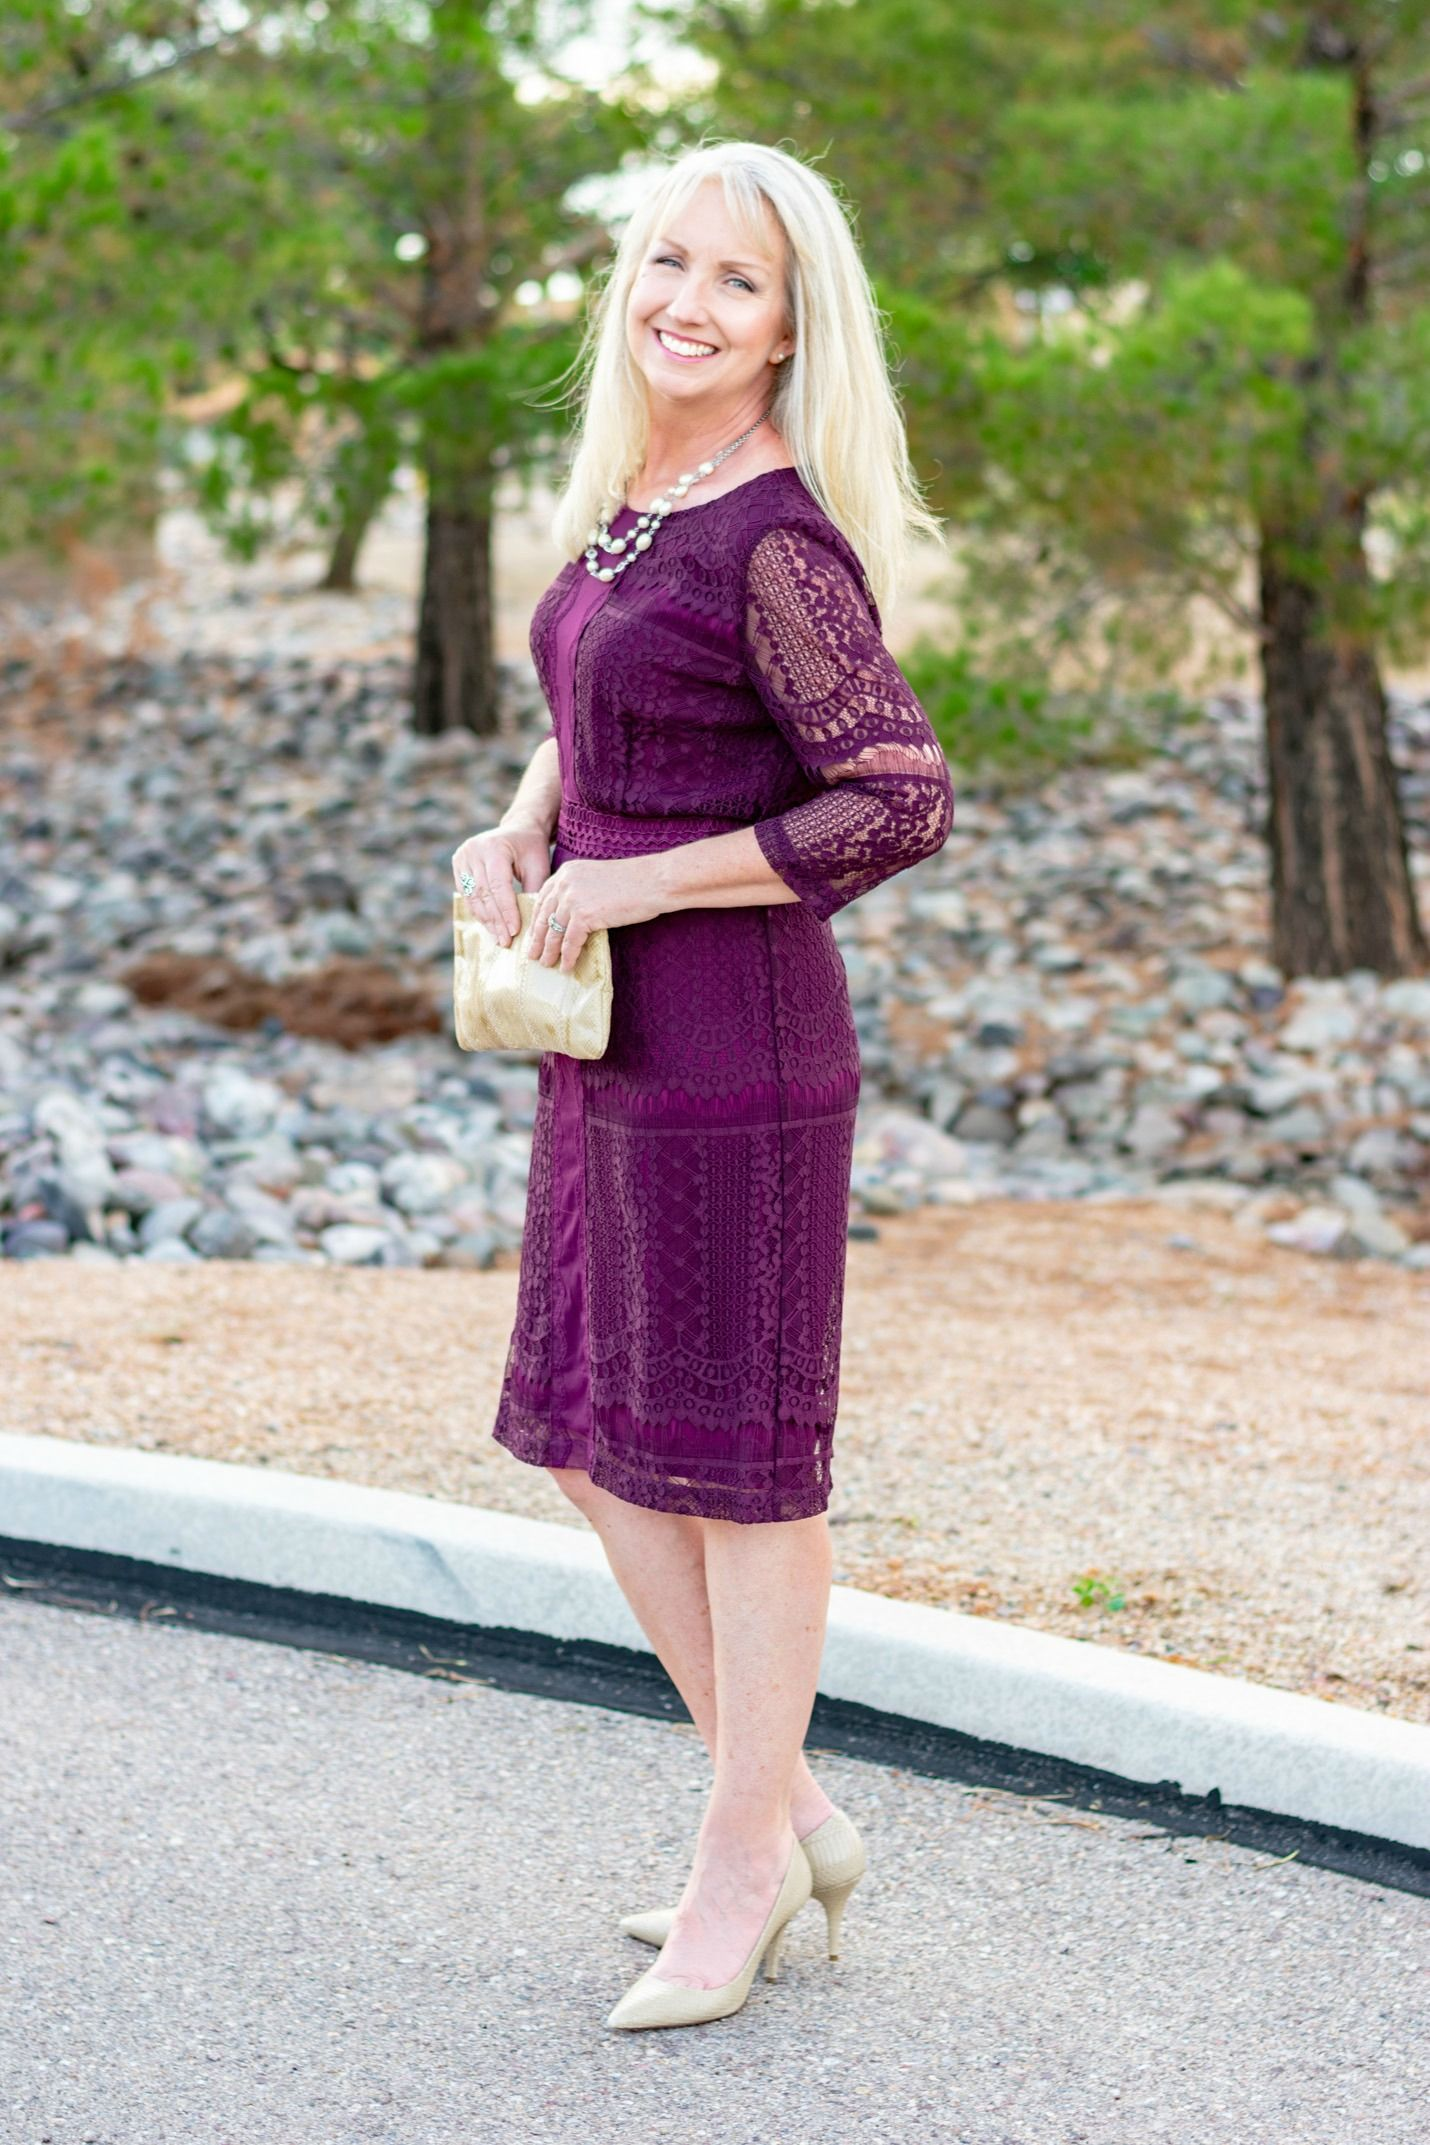 6 Sheath Dresses You Can Wear this Fall - Dressed for My Day